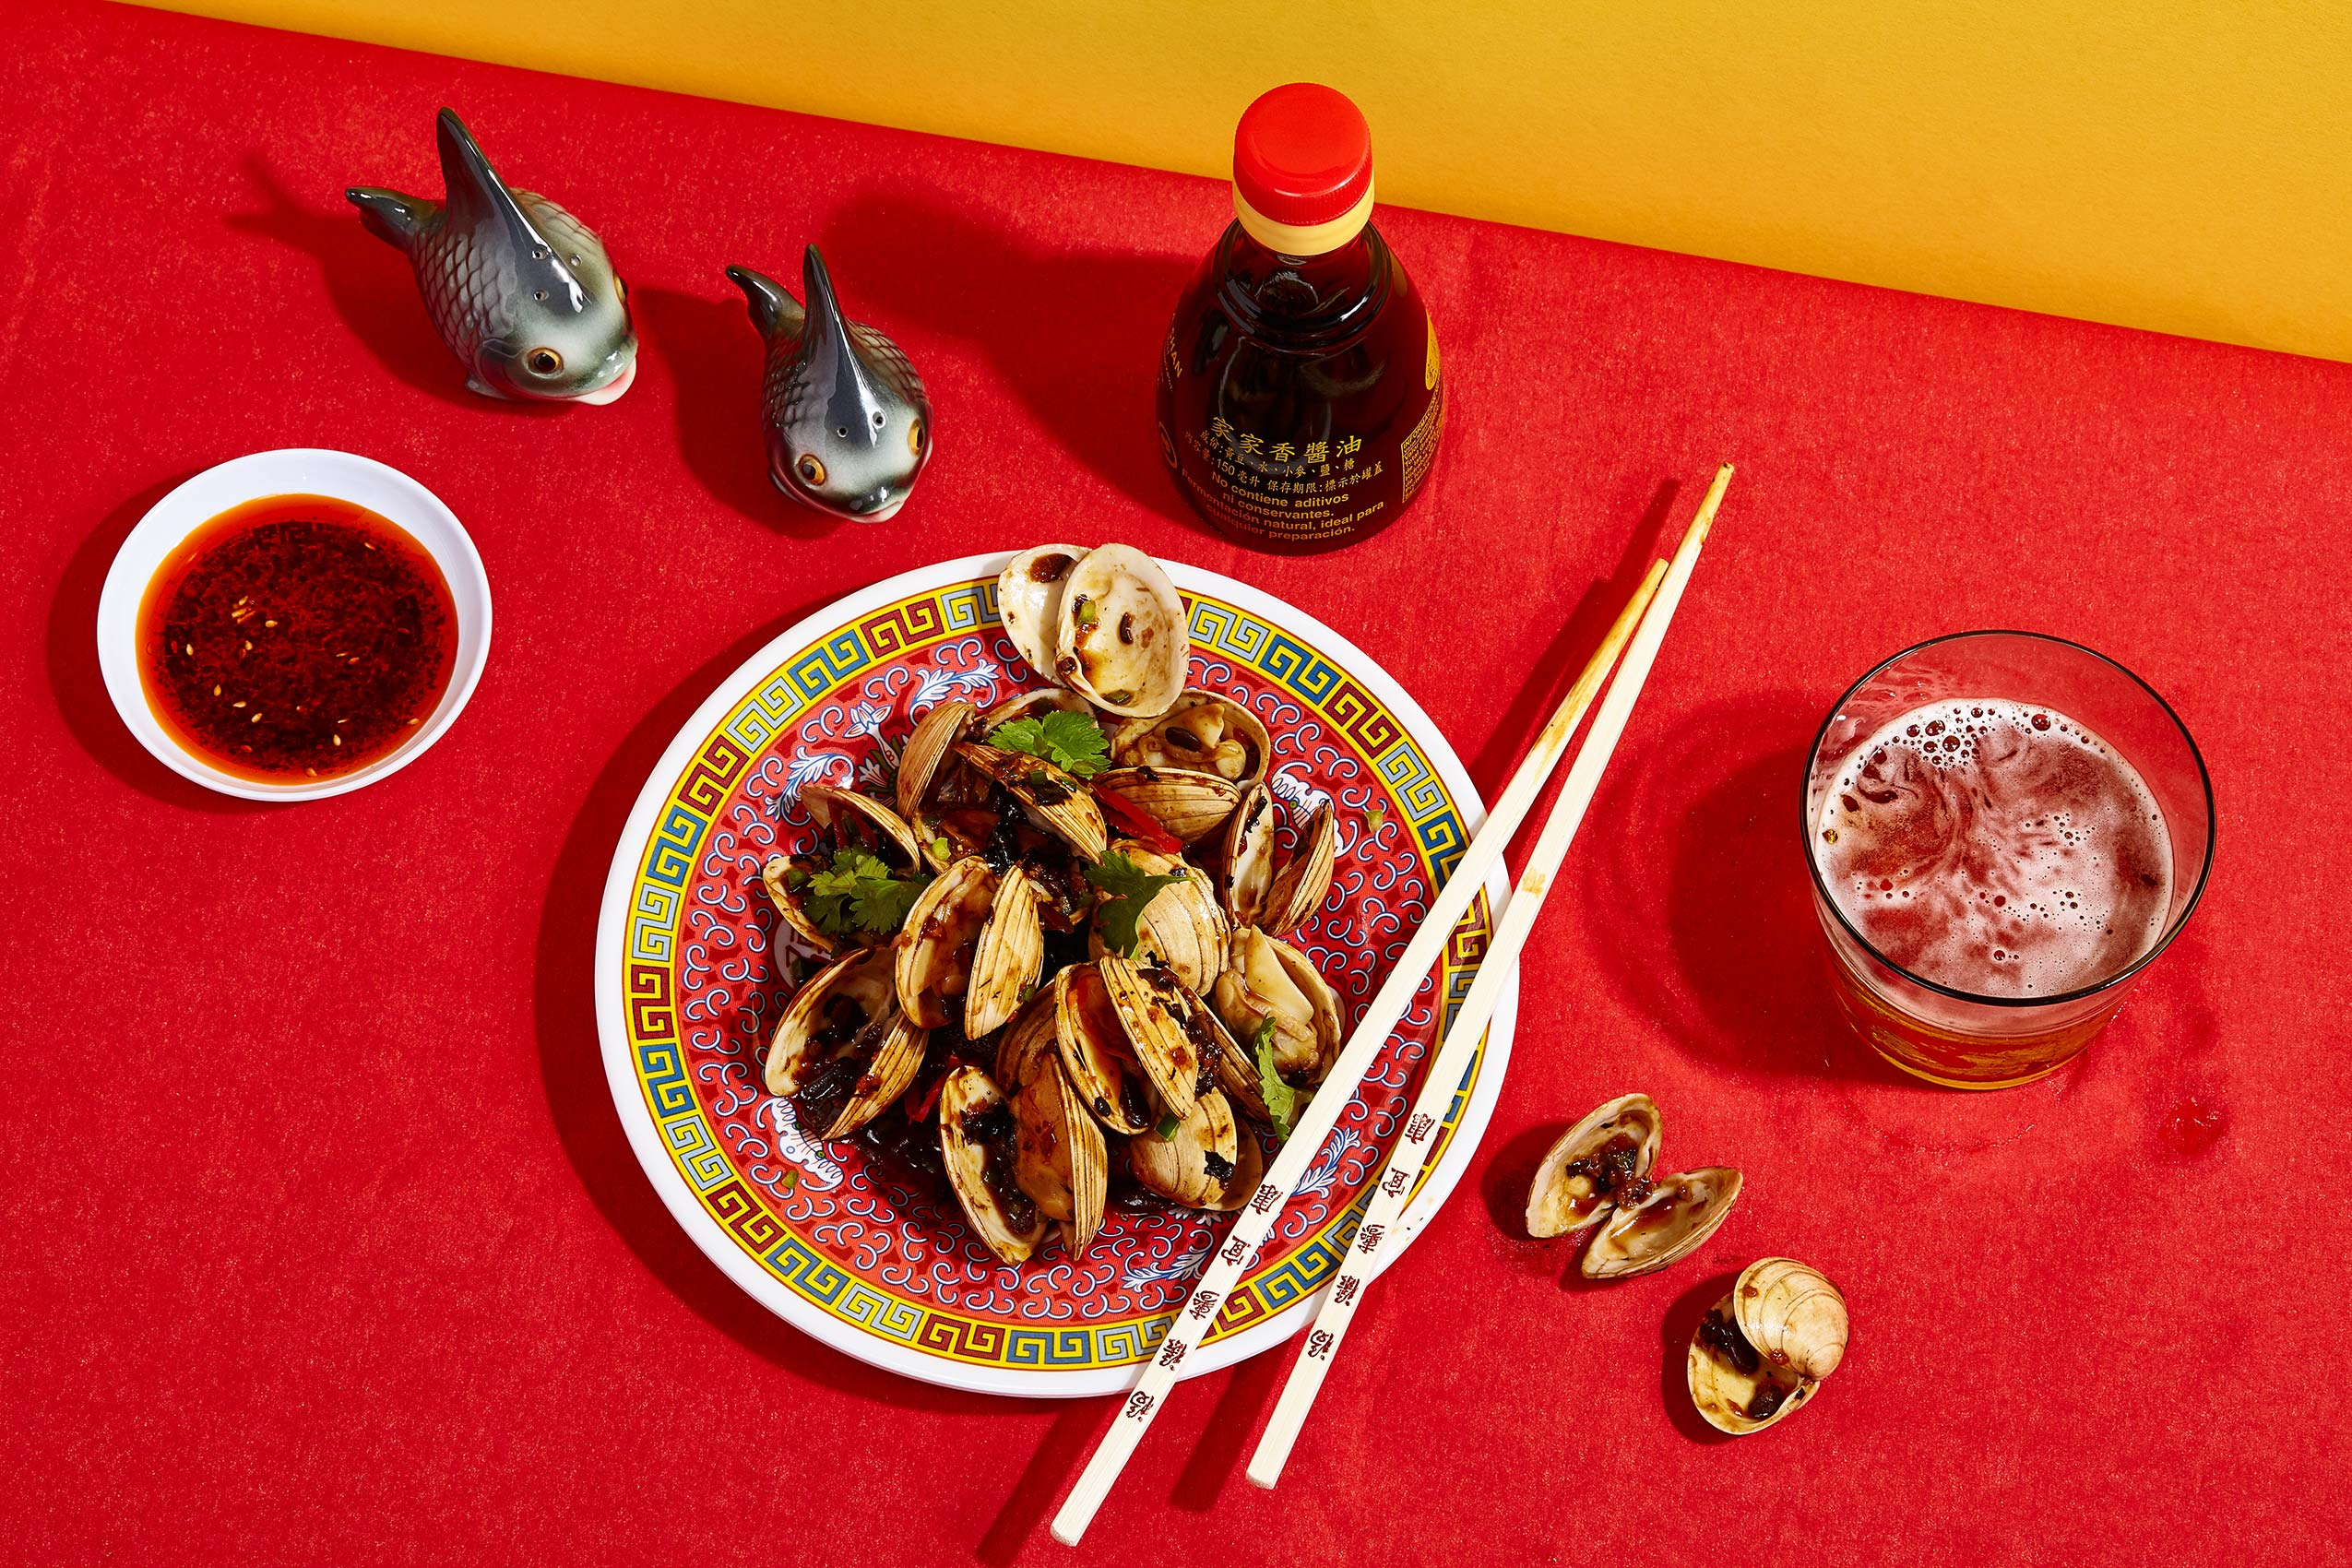 Black Bean Clams & Tsingtao beer, Glasgow food photography